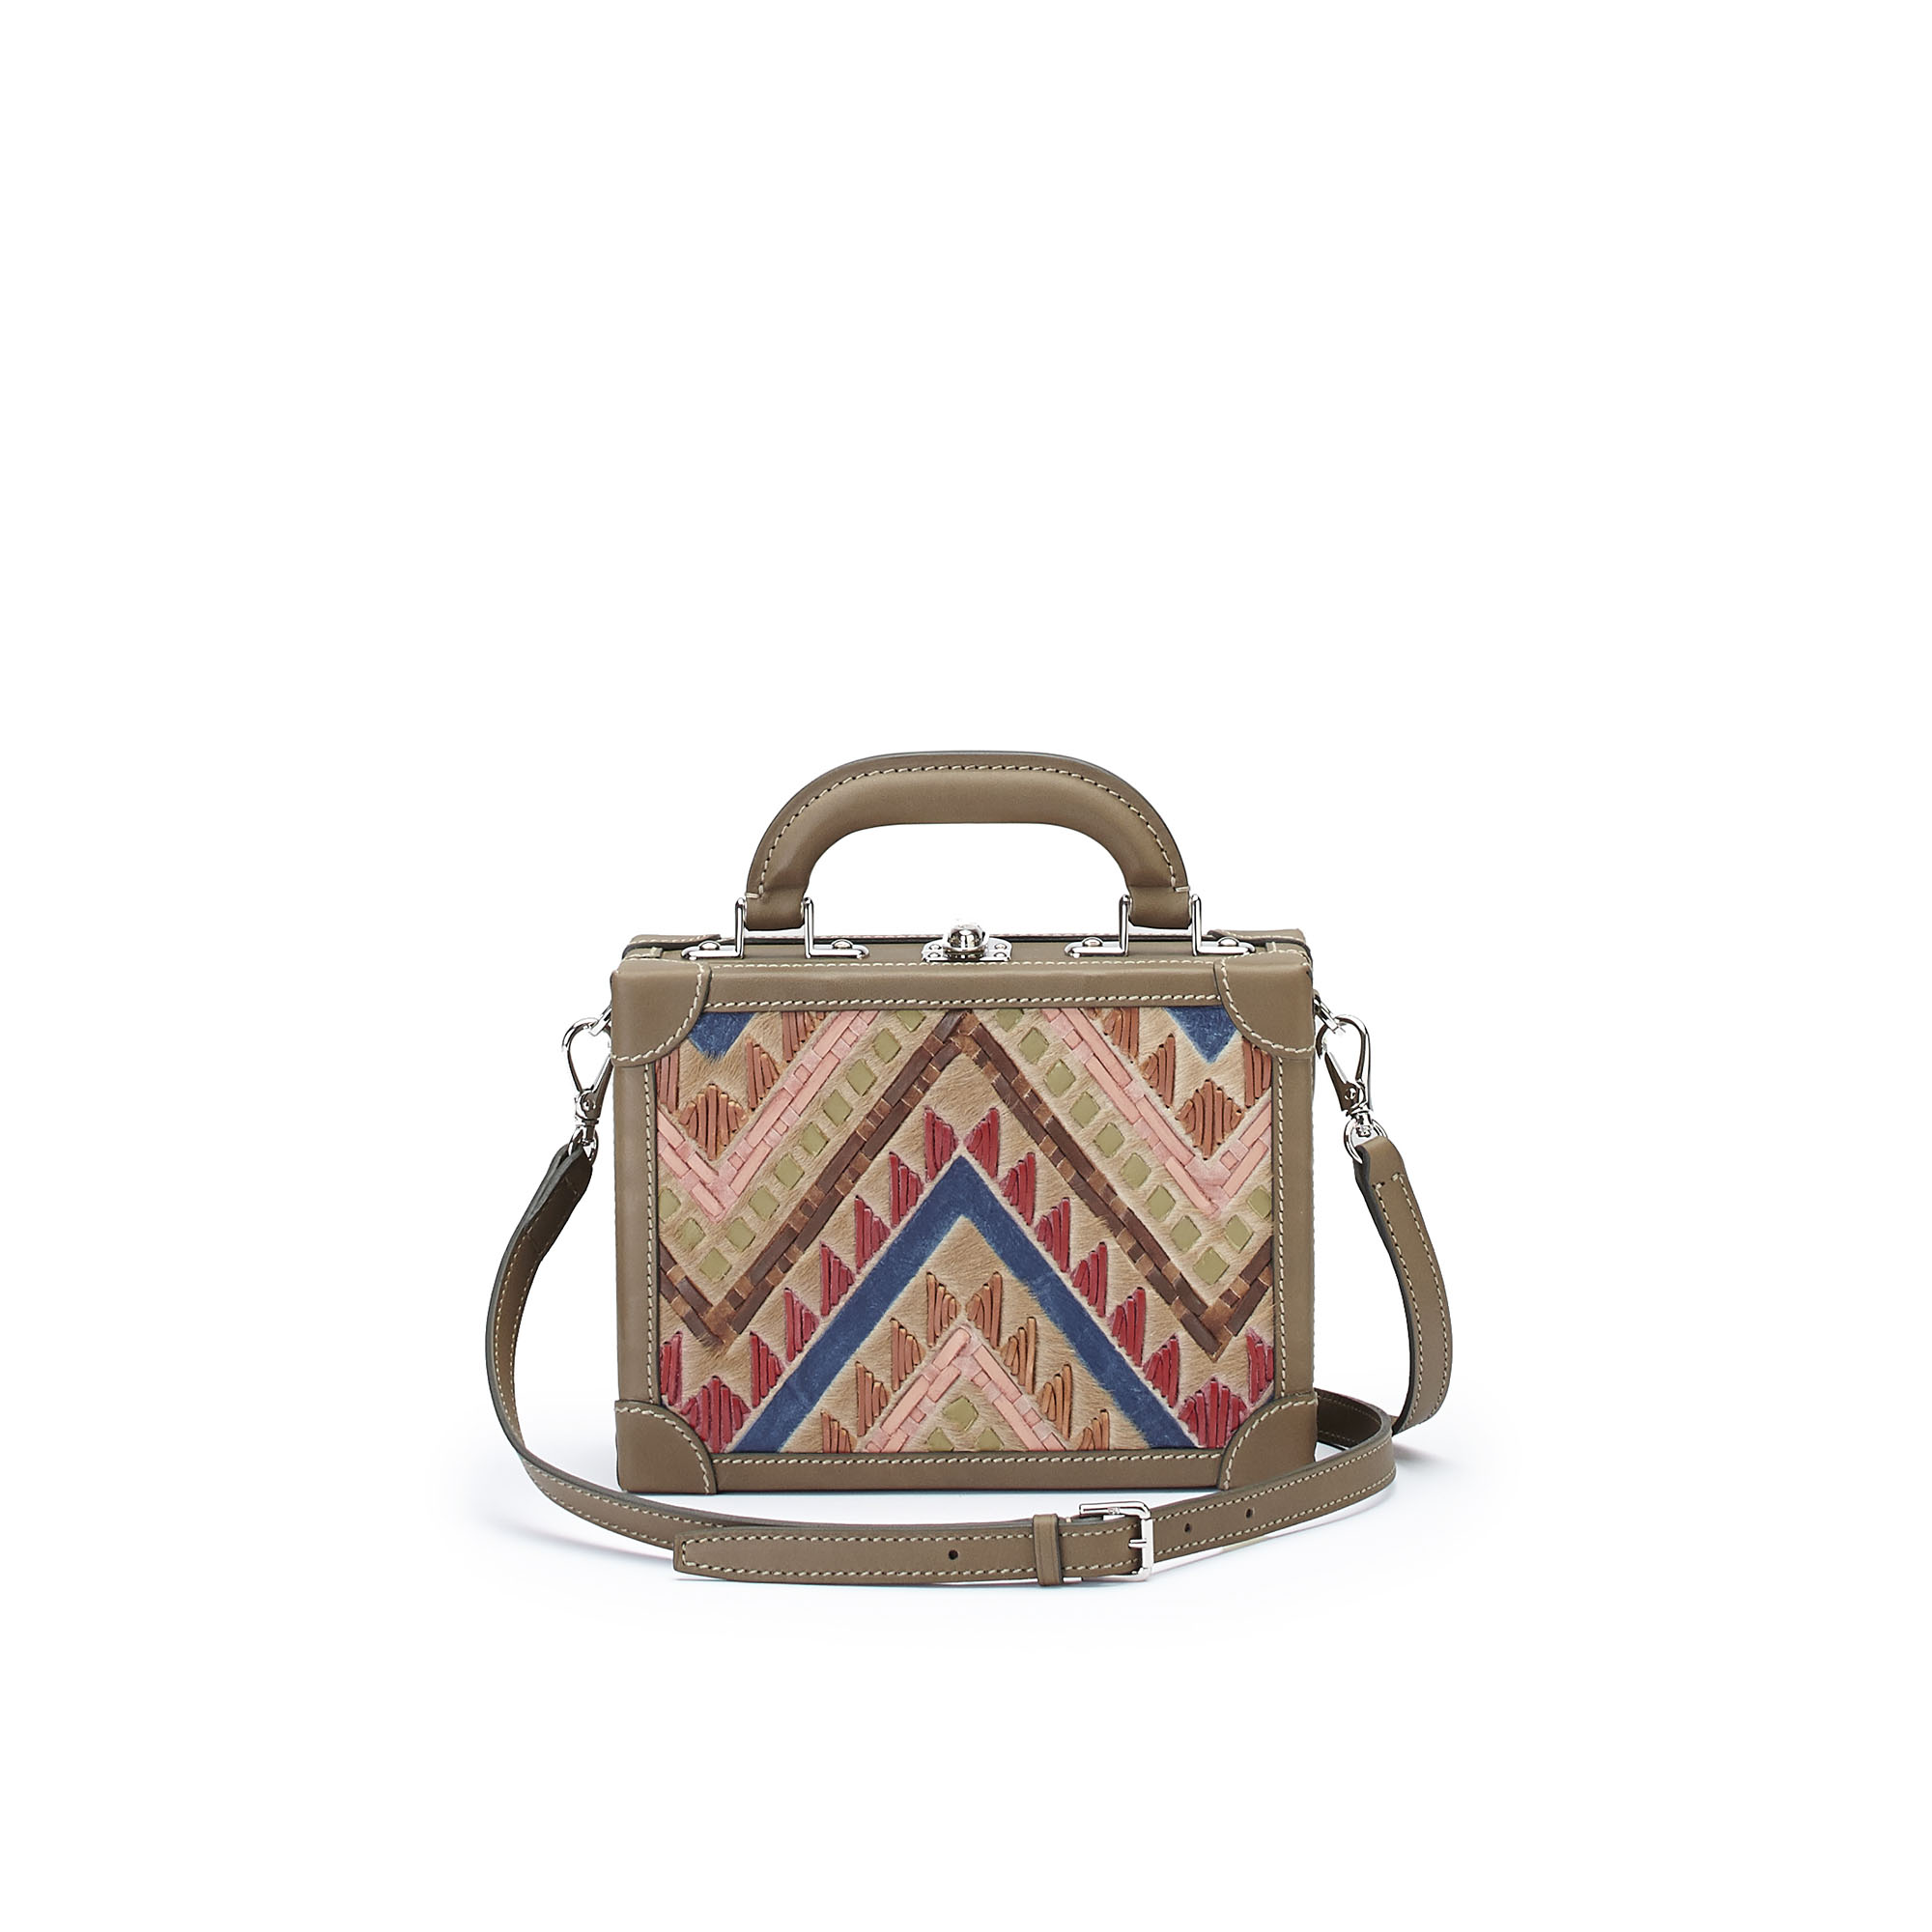 The multicolor haircalf woven Squared Bertoncina suitcase by Bertoni 1949 03